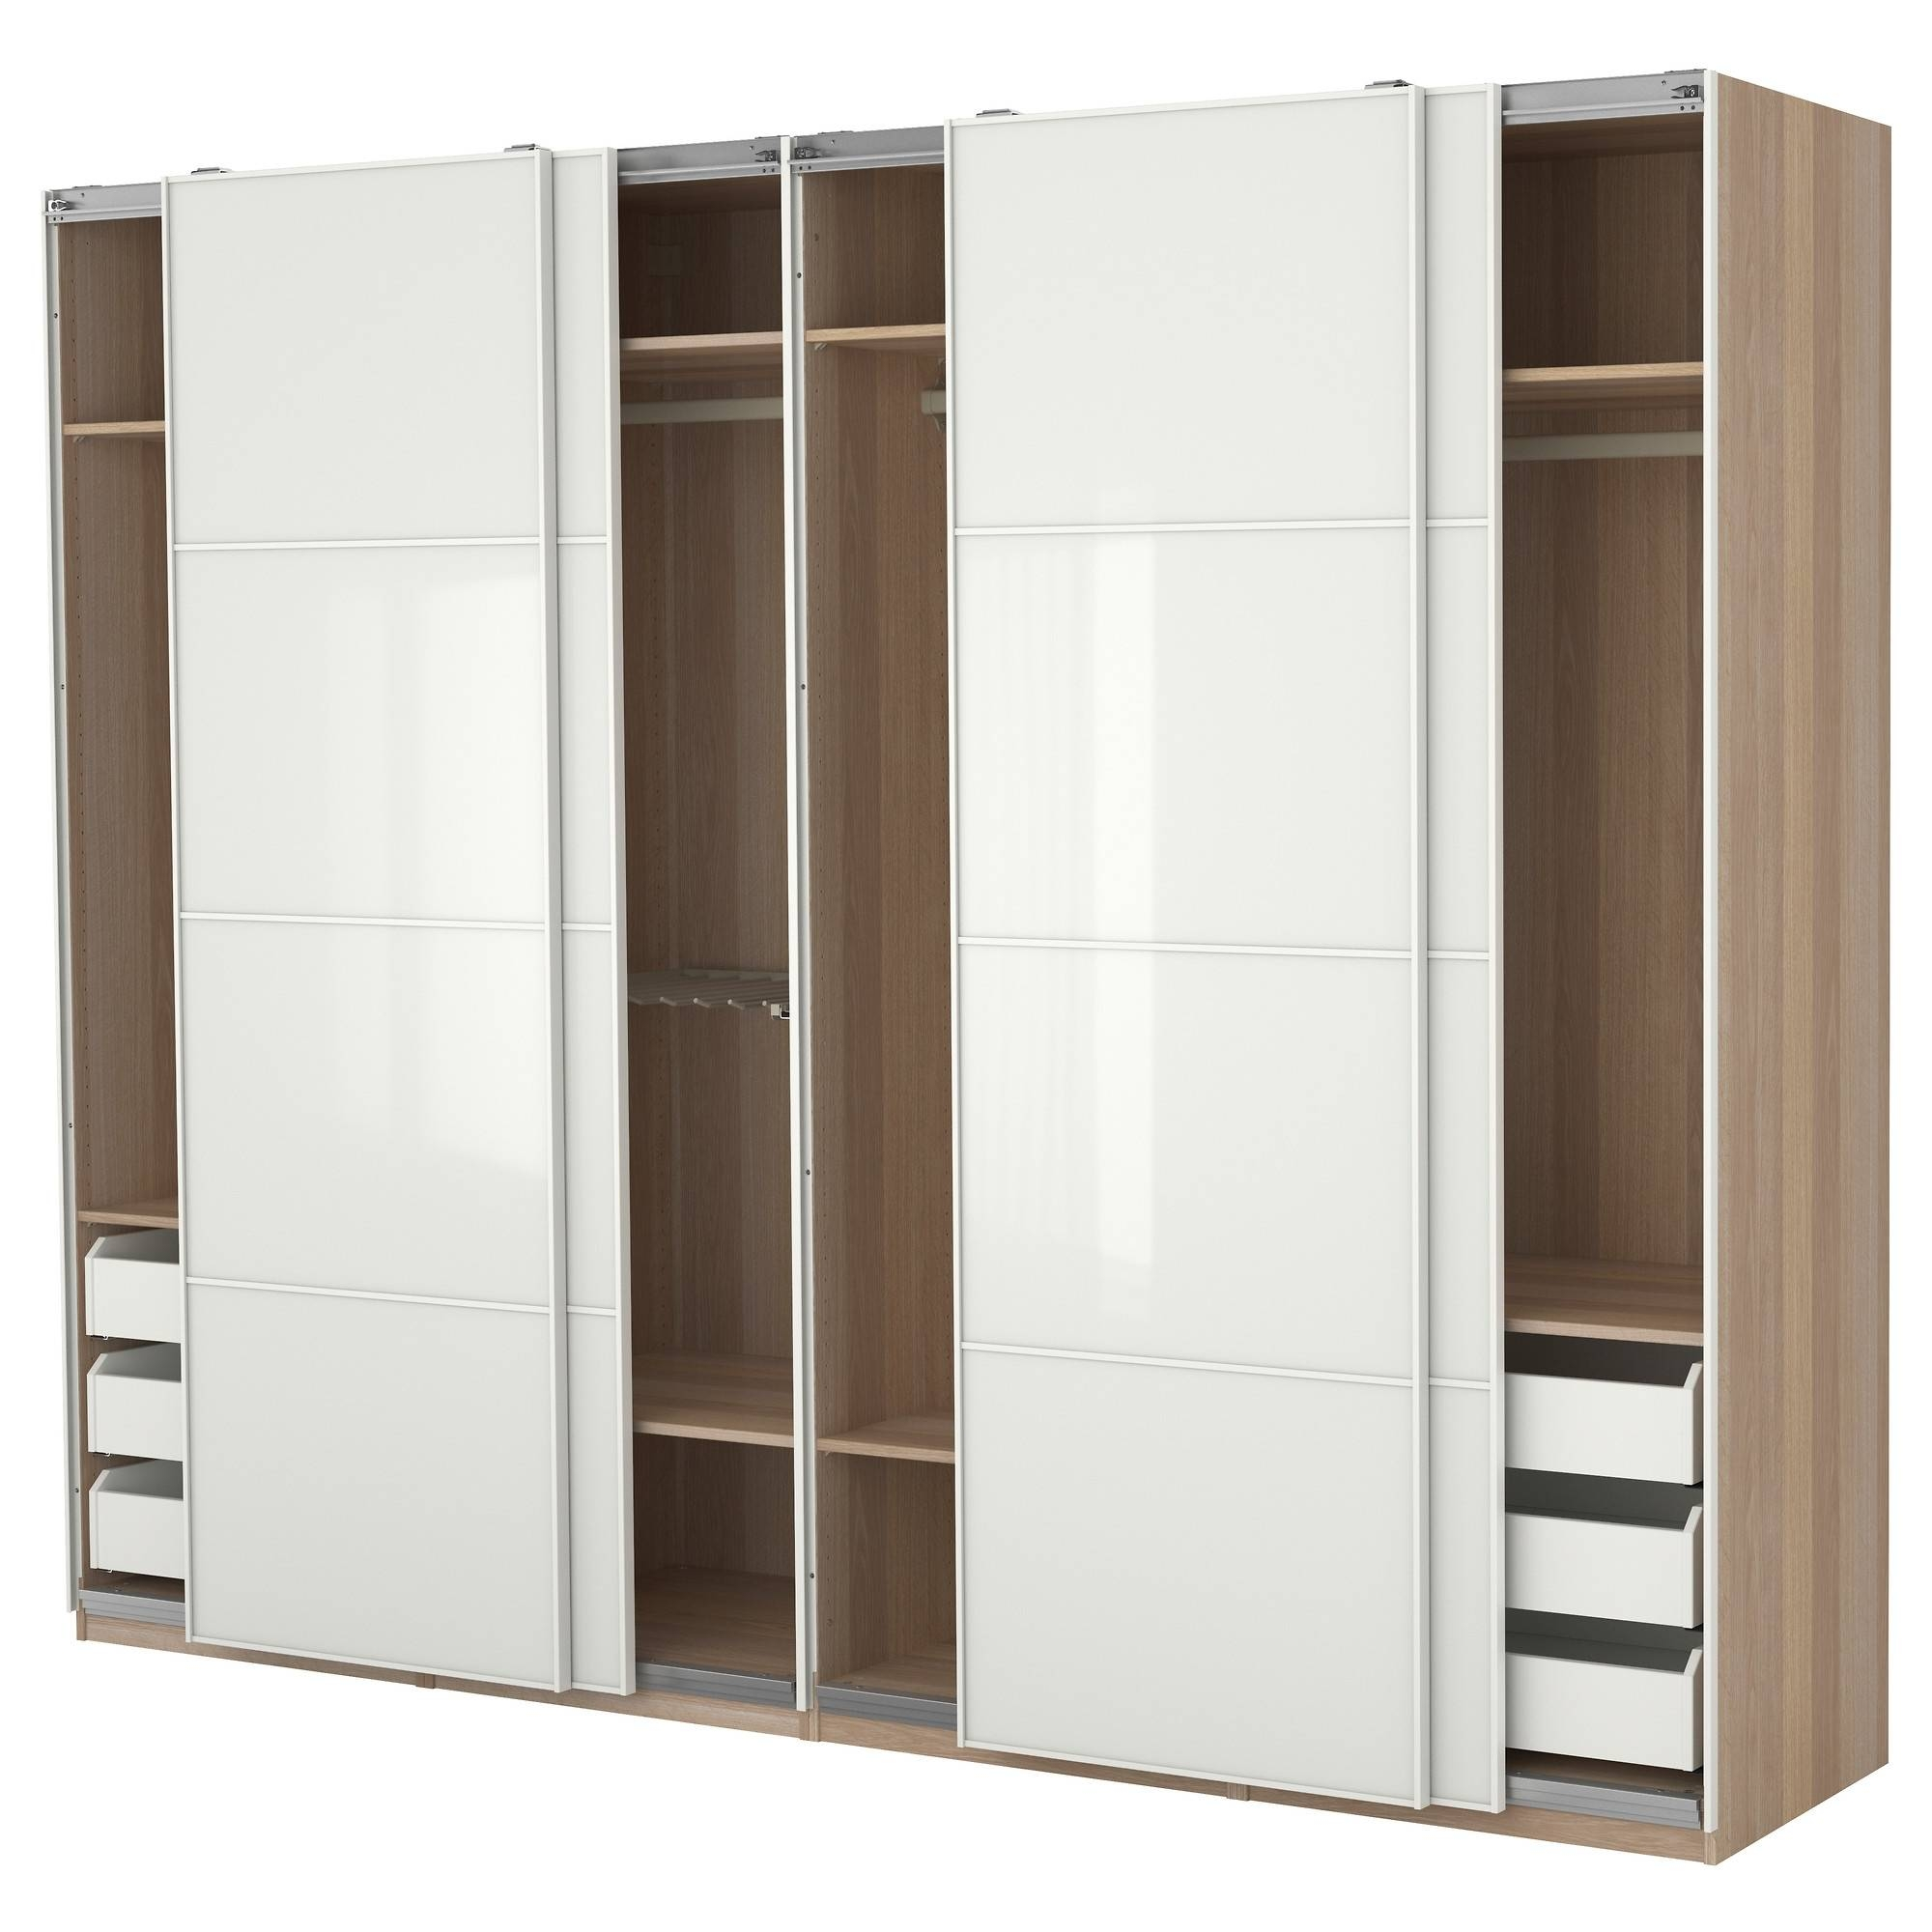 15 Ideas Of Solid Wood Built In Wardrobes with Solid Wood Built in Wardrobes (Image 8 of 30)